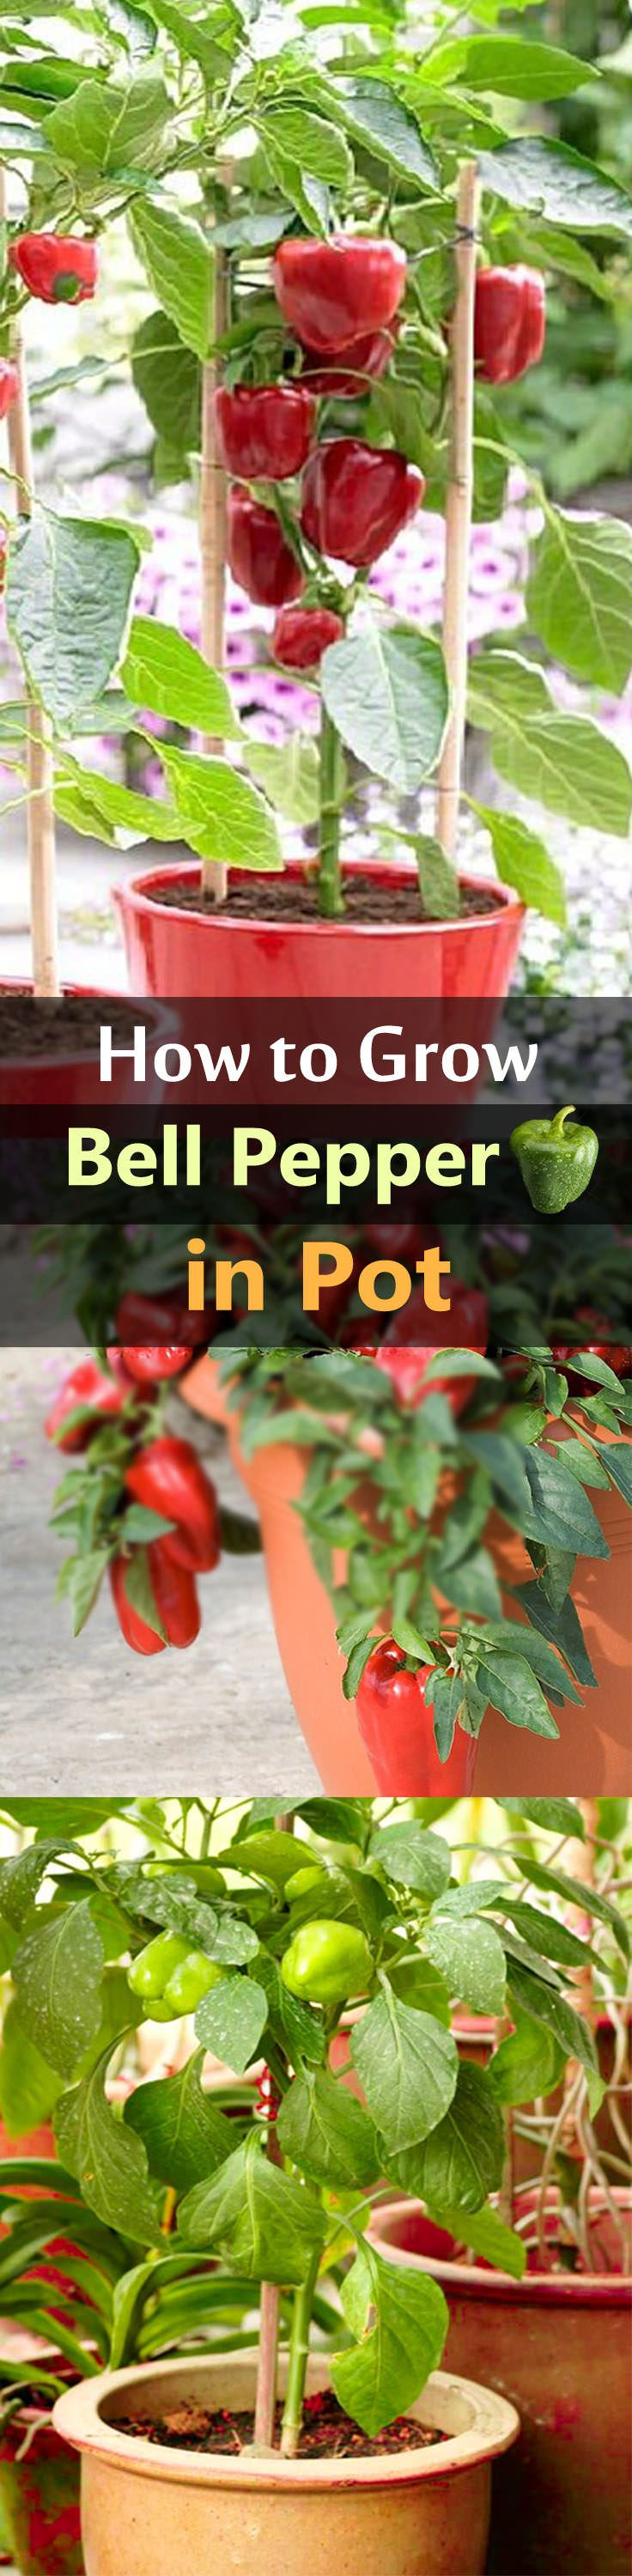 Growing cherry tomatoes in pots - Growing Bell Peppers In Pots Is A Great Idea If You Re Short Of Space